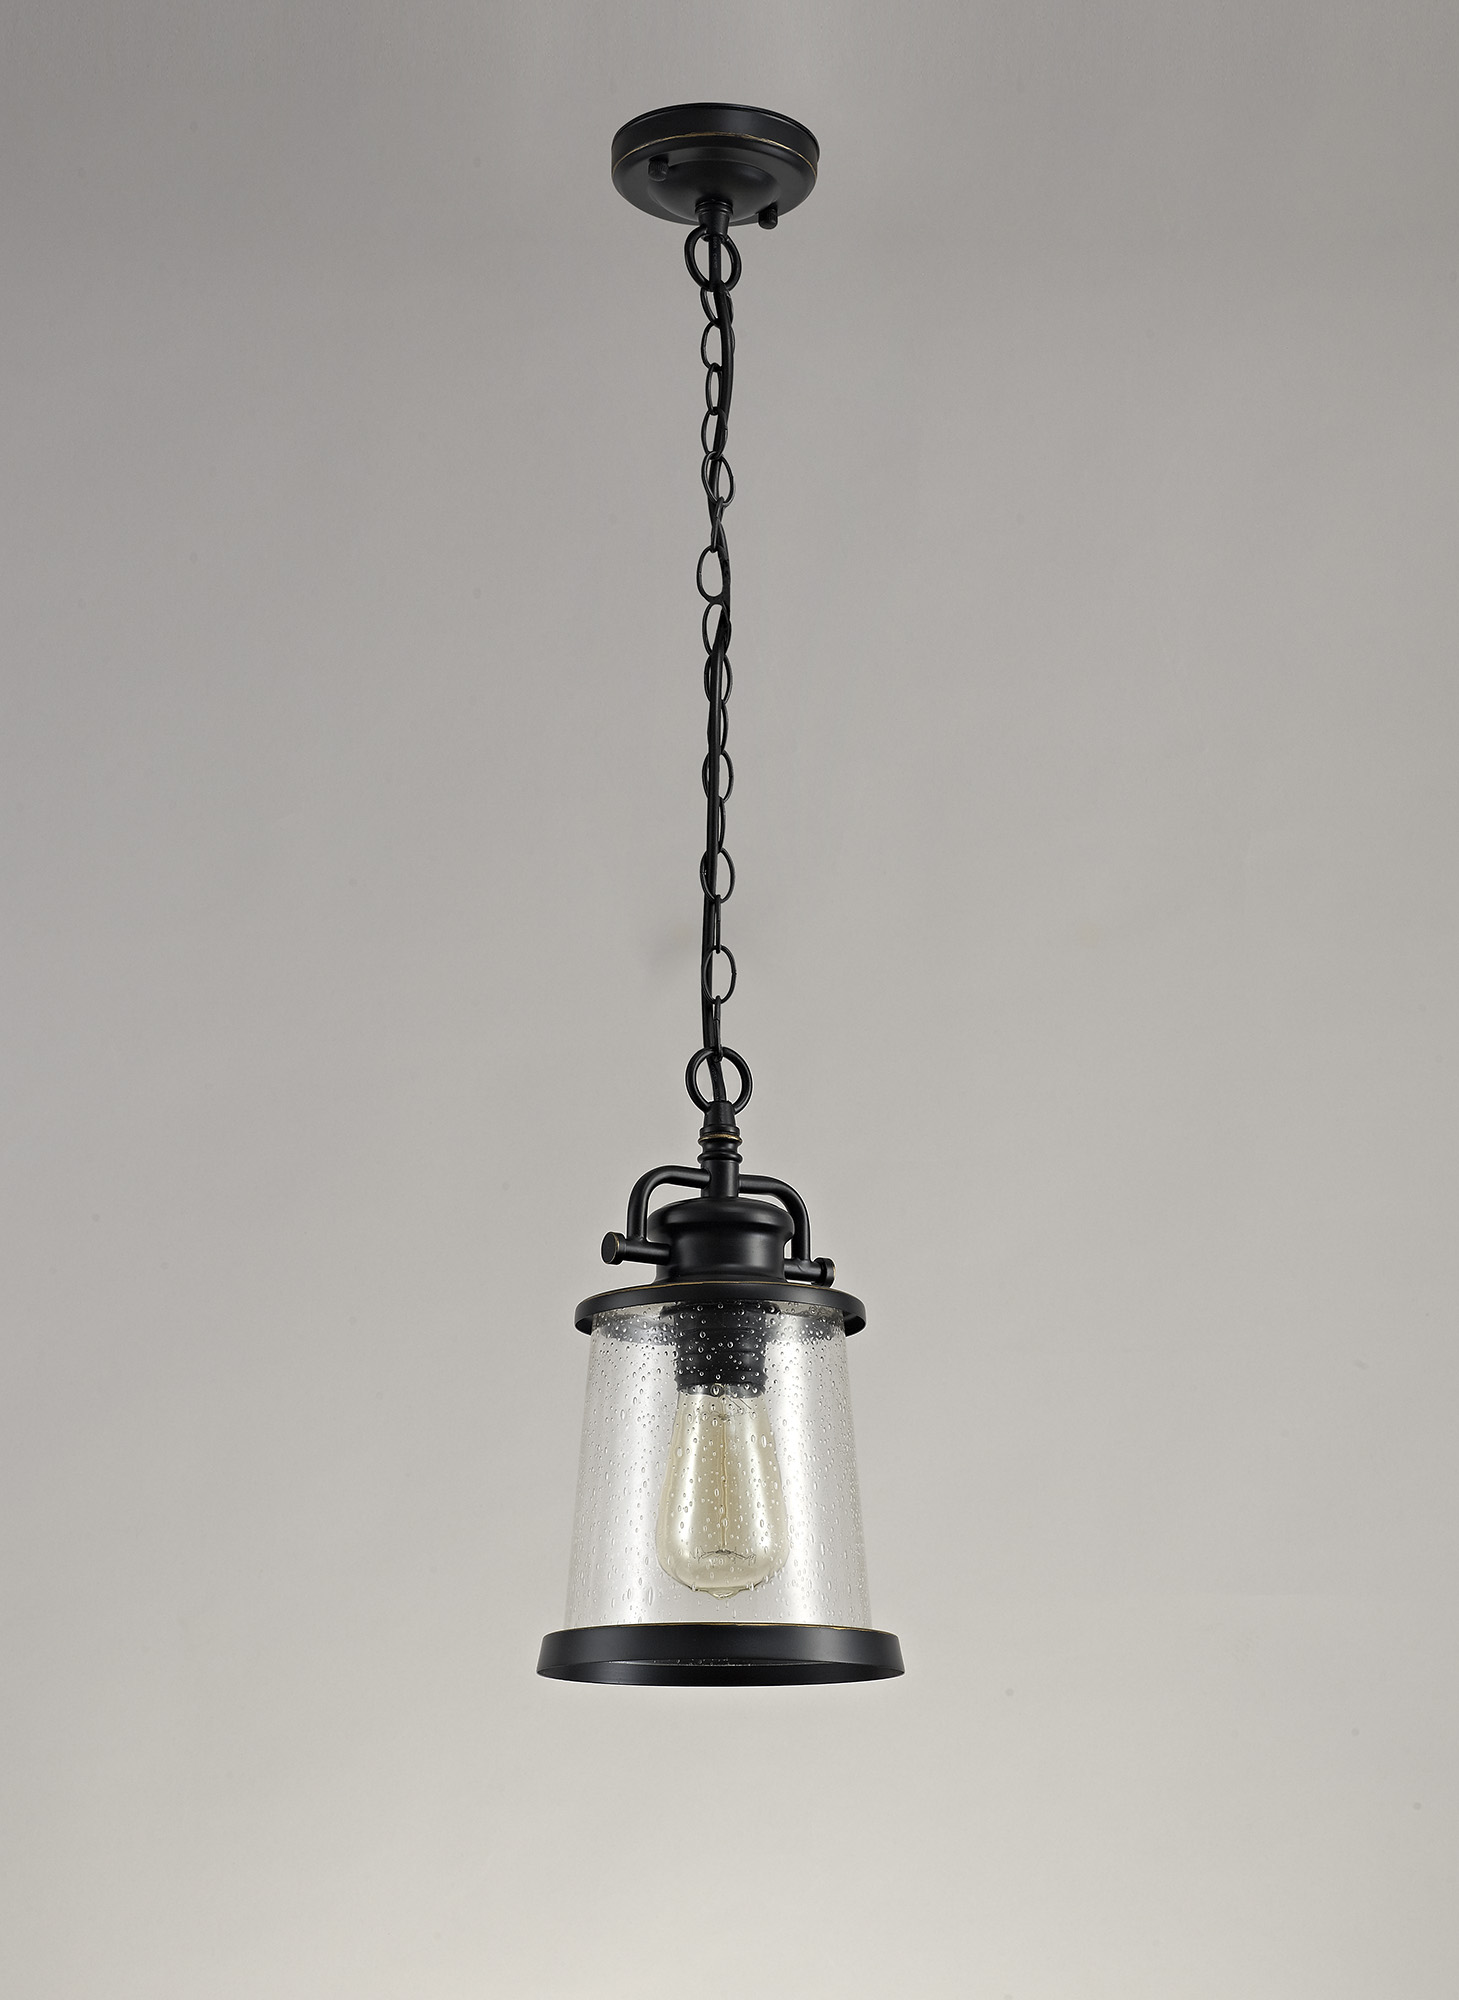 Pendant, 1 x E27, Black/Gold With Seeded Clear Glass, IP54, 2yrs Warranty